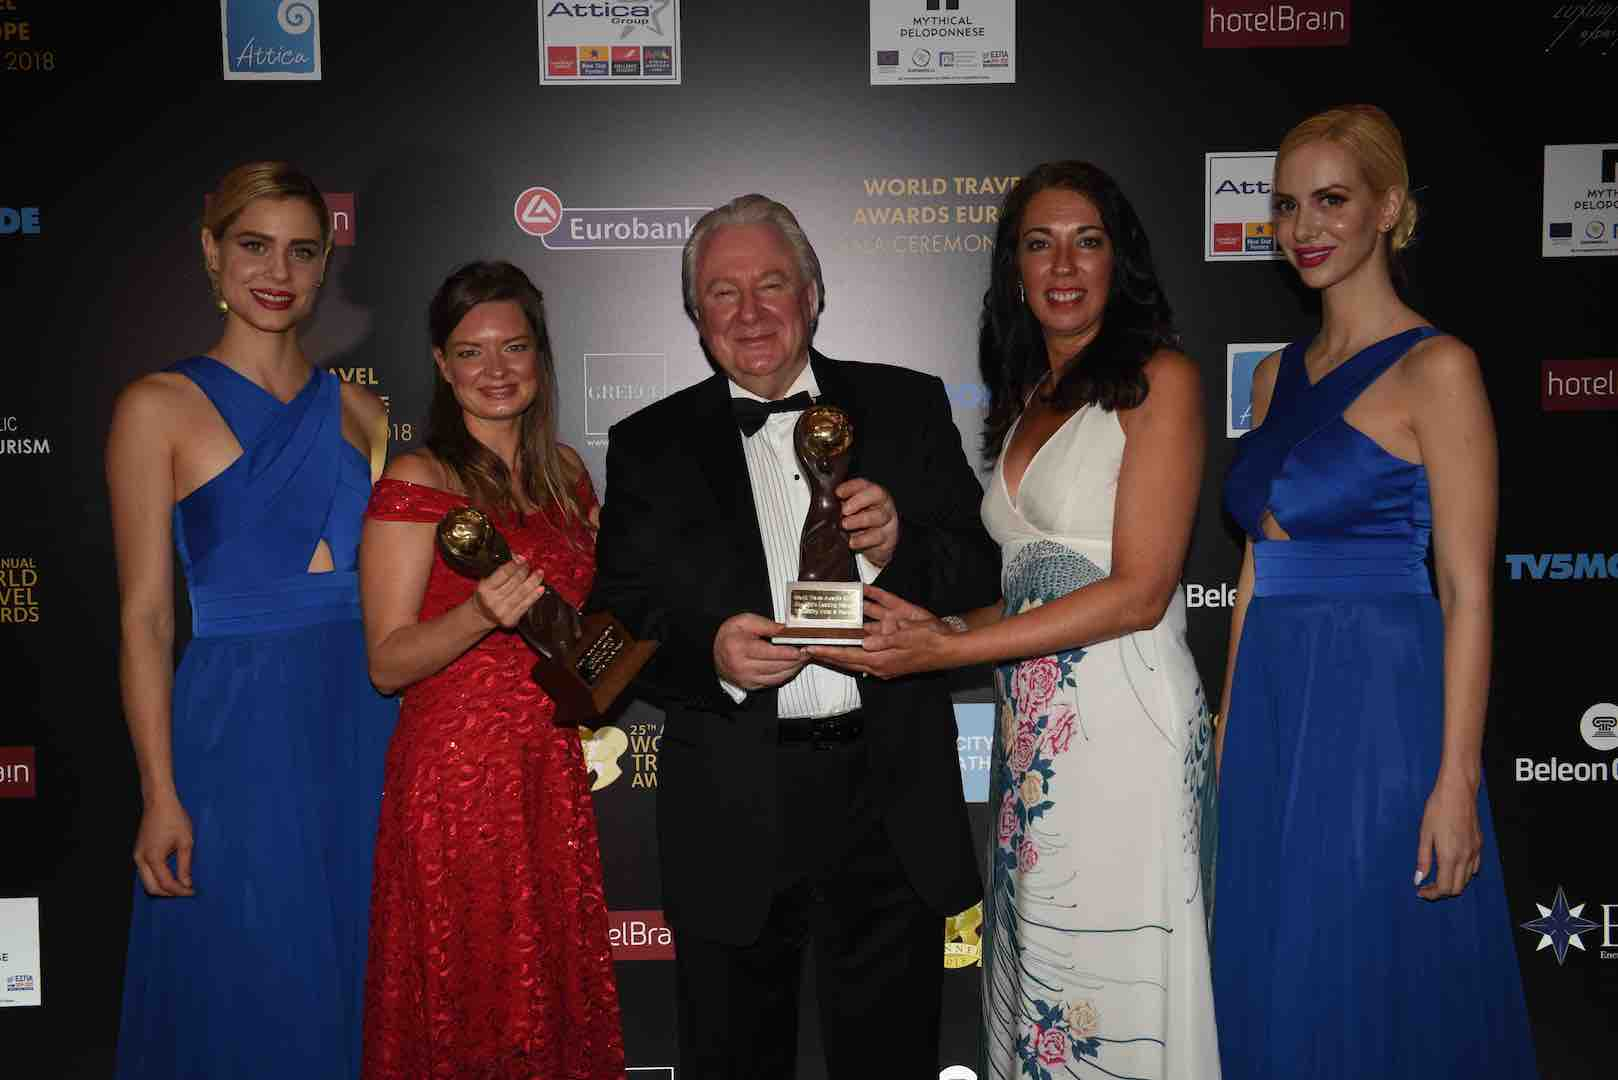 The Belfry scoops two major awards